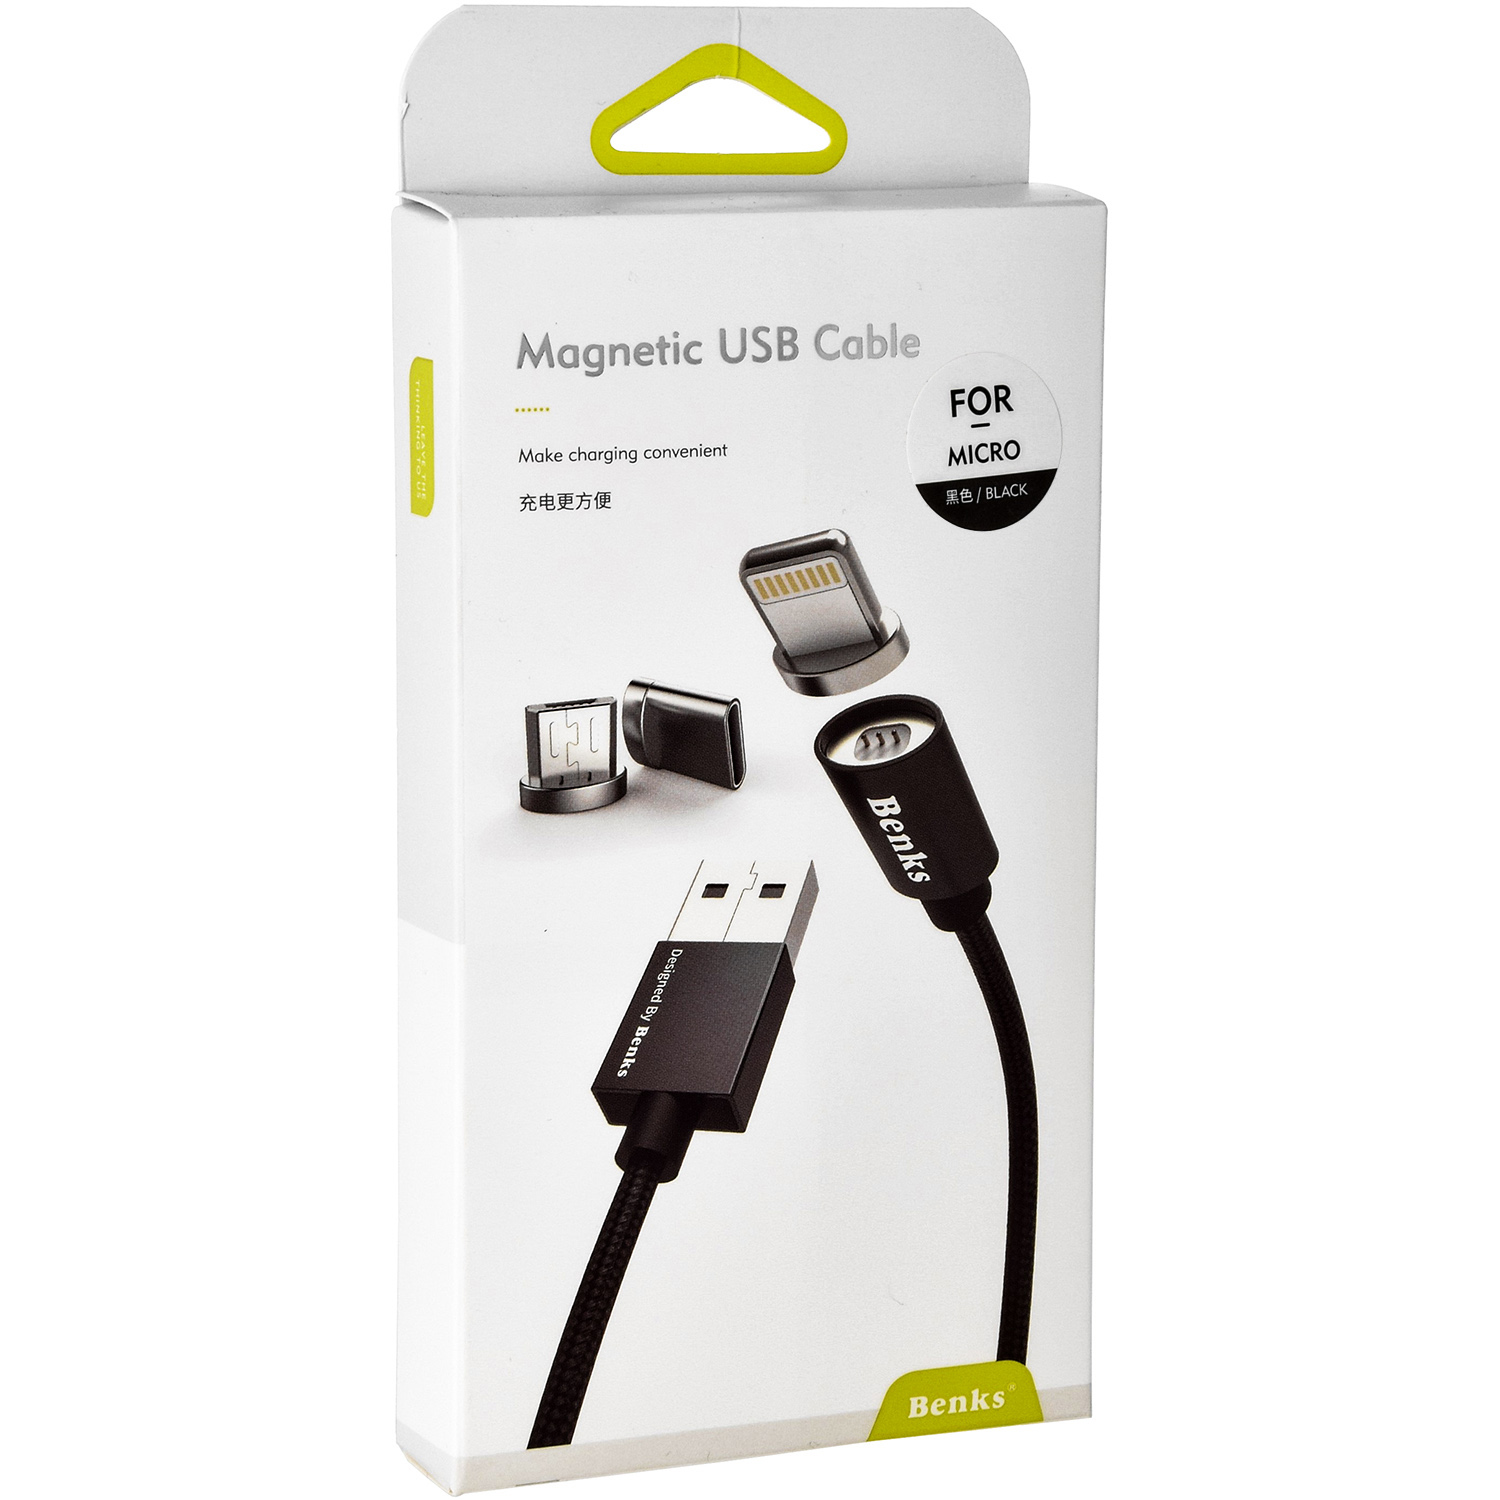 Kabel Benks Magnetic USB Cable - MicroUSB